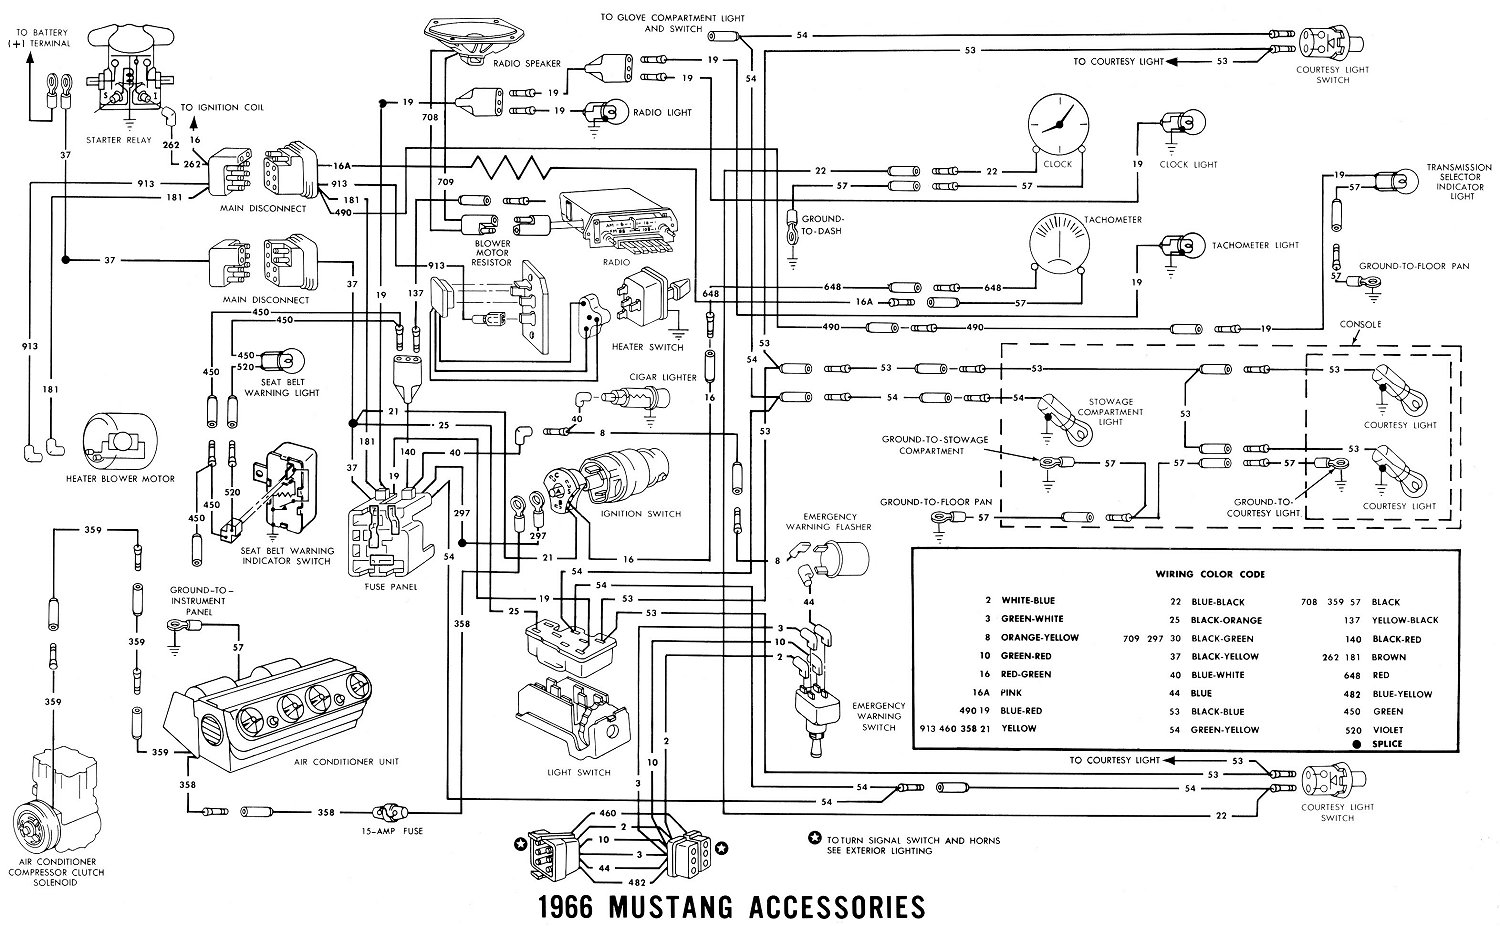 2015 Mustang Radio Wiring Diagram on wrx engine wiring harness